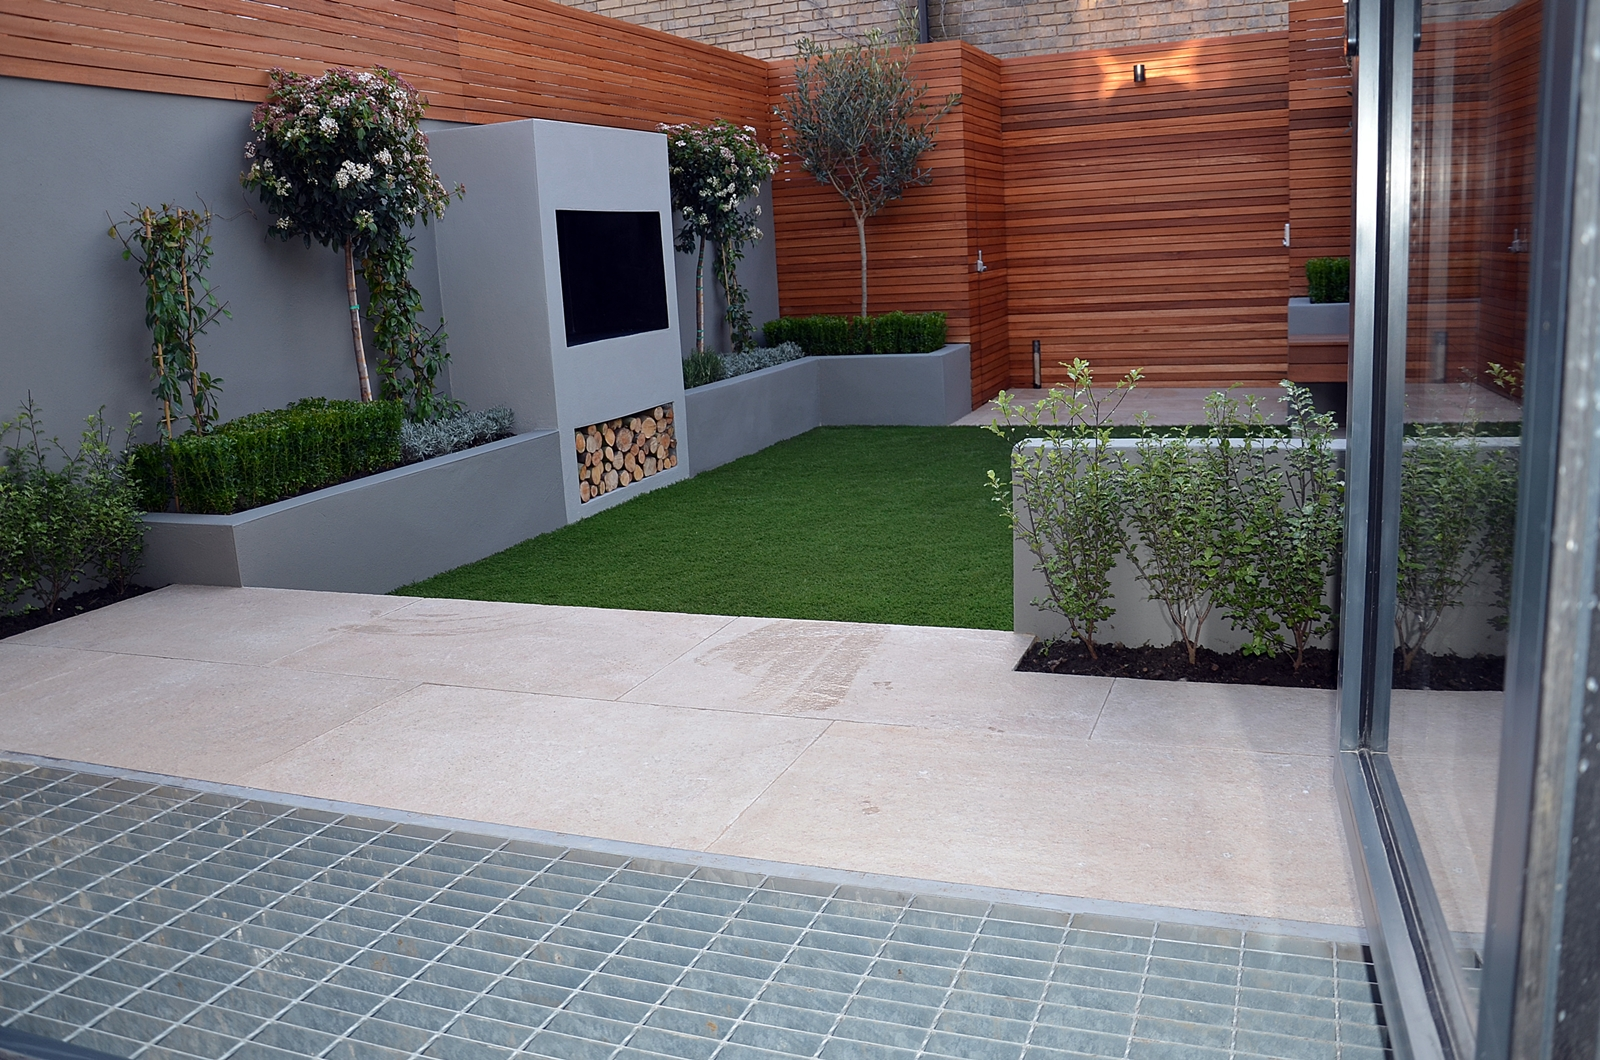 beige limestone paving fake artificial grass lawn outdoor fire place BBQ floating bench hardwood slatted privacy screen and doors bespoke storgae unit London